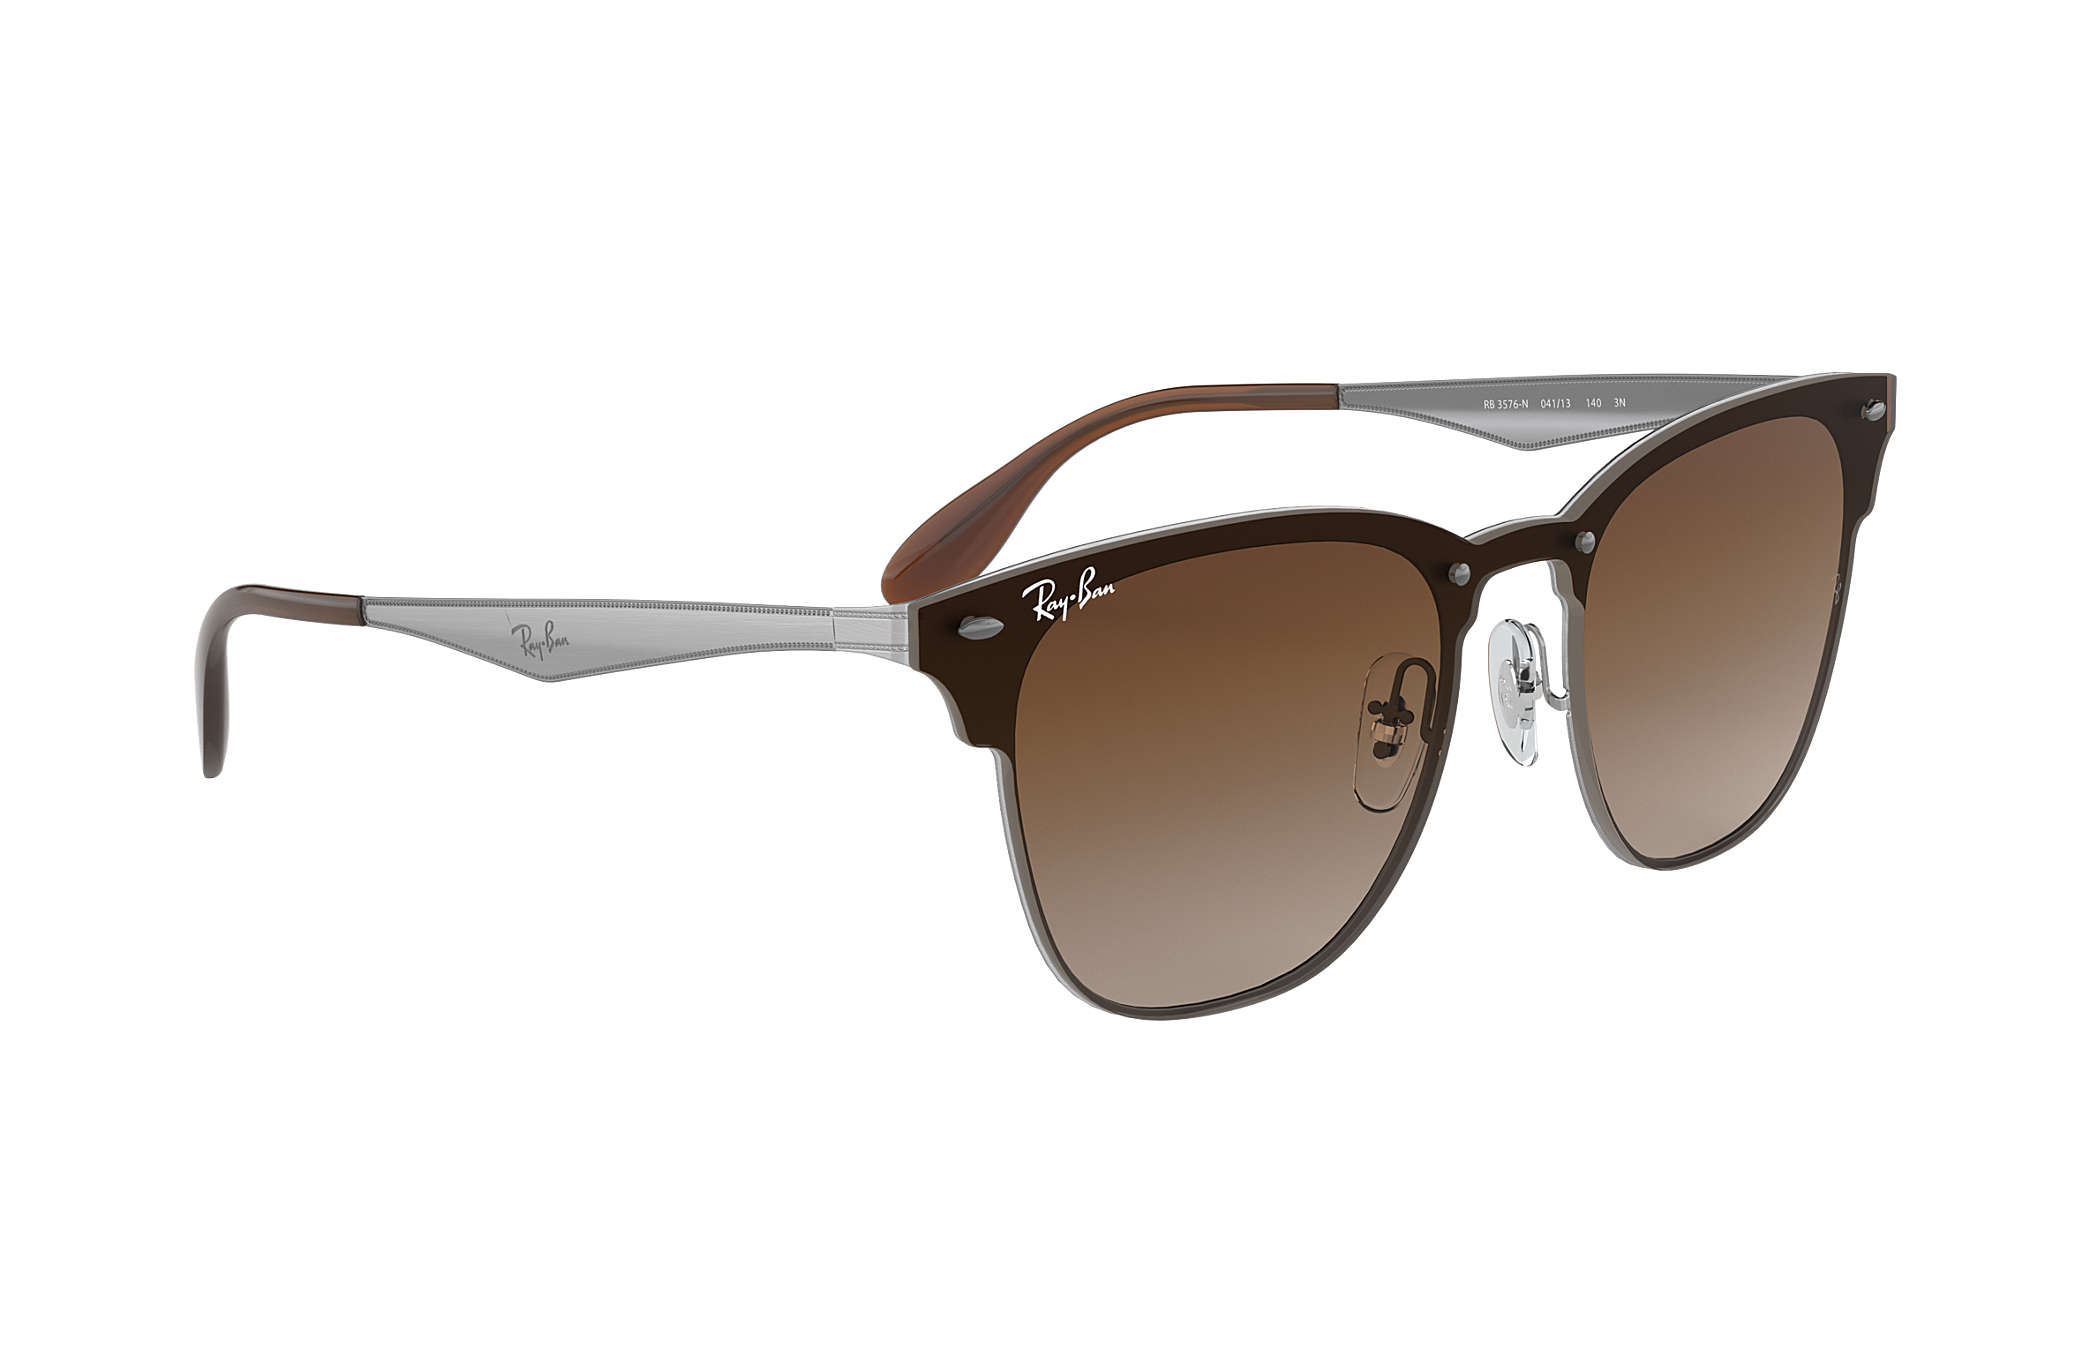 Ray-Ban Blaze Clubmaster RB3576N Gold - Steel - Blue Lenses ... d88a83588d